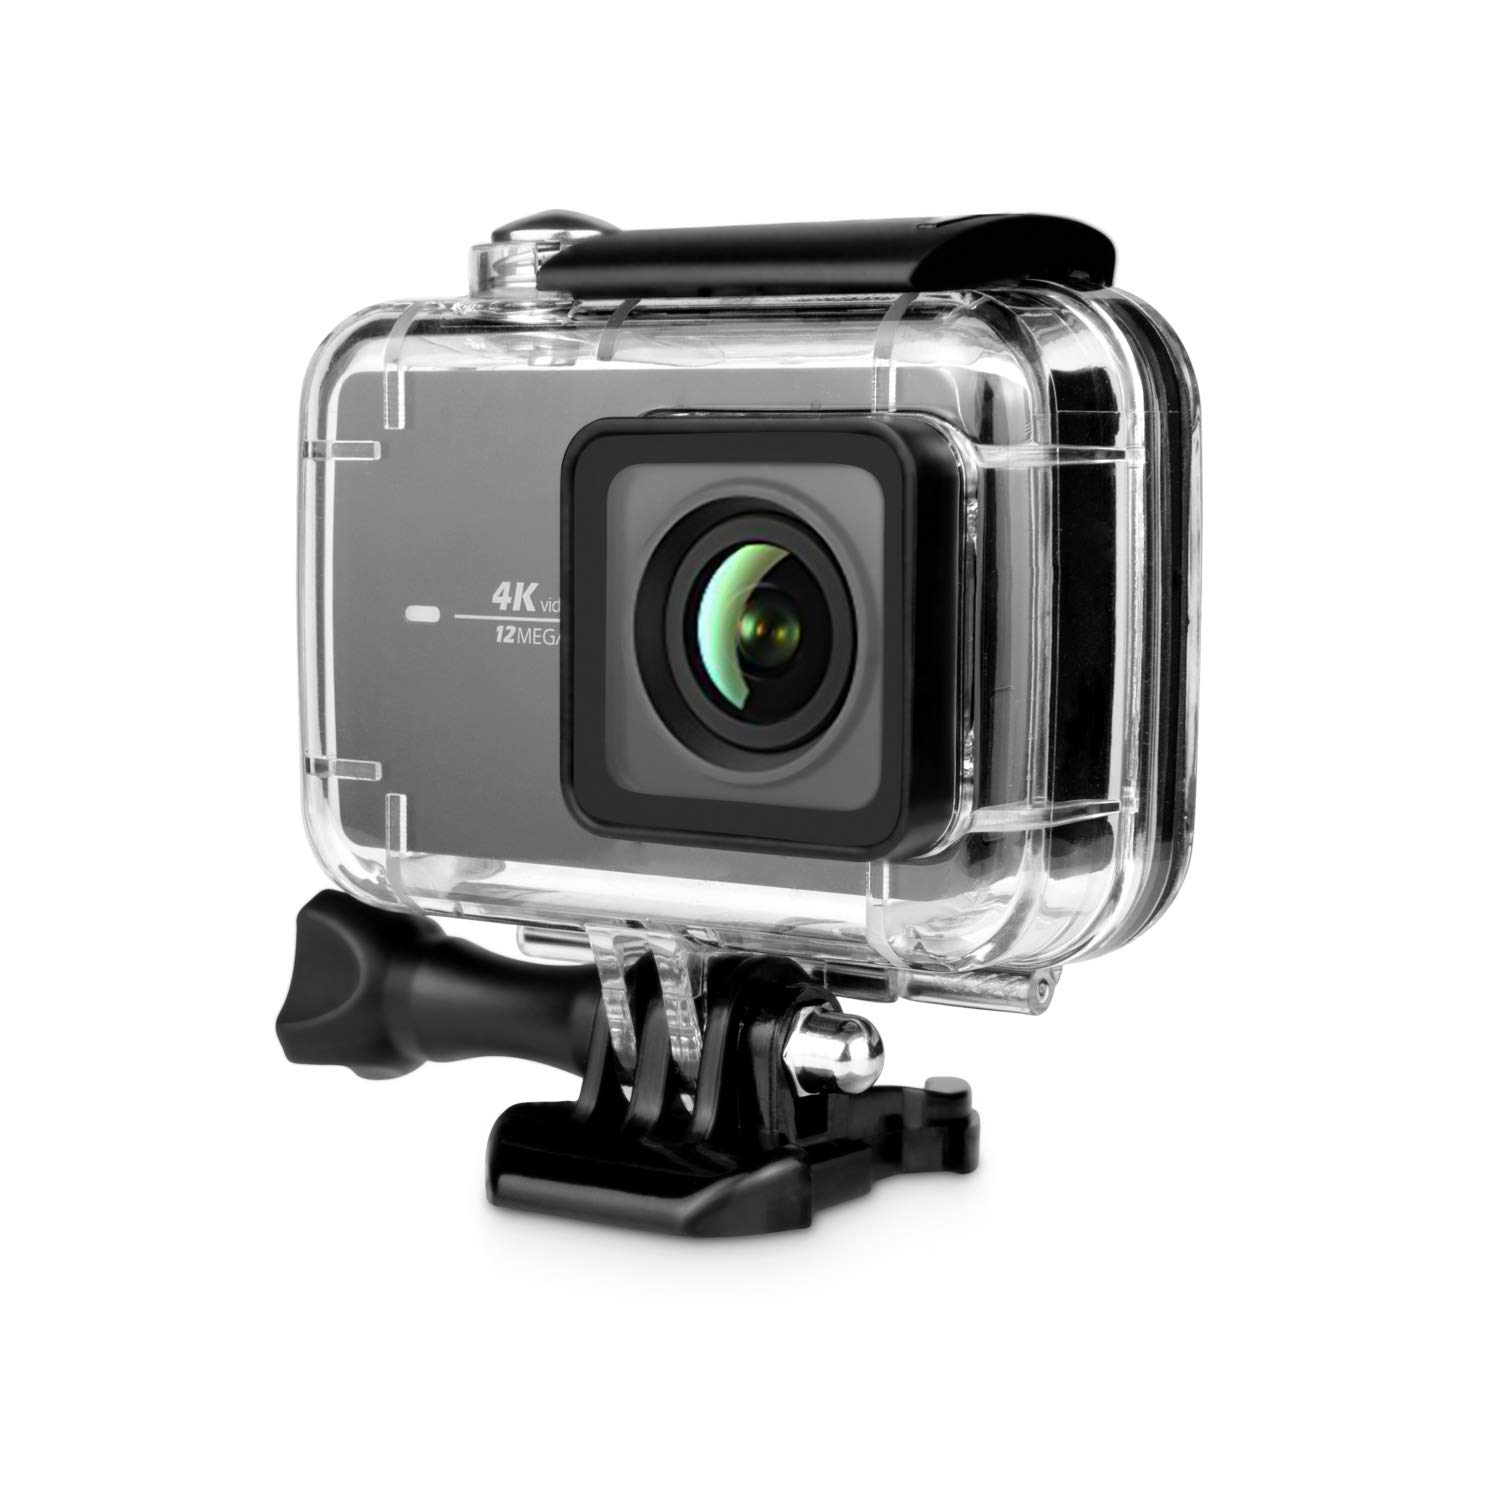 Rhodesy Waterproof Protective Case with Quick Release Buckle for Xiaomi Yi 4K/ 4K+/ Yi Lite/ Yi Discovery 4K Action Camera, Black by Rhodesy